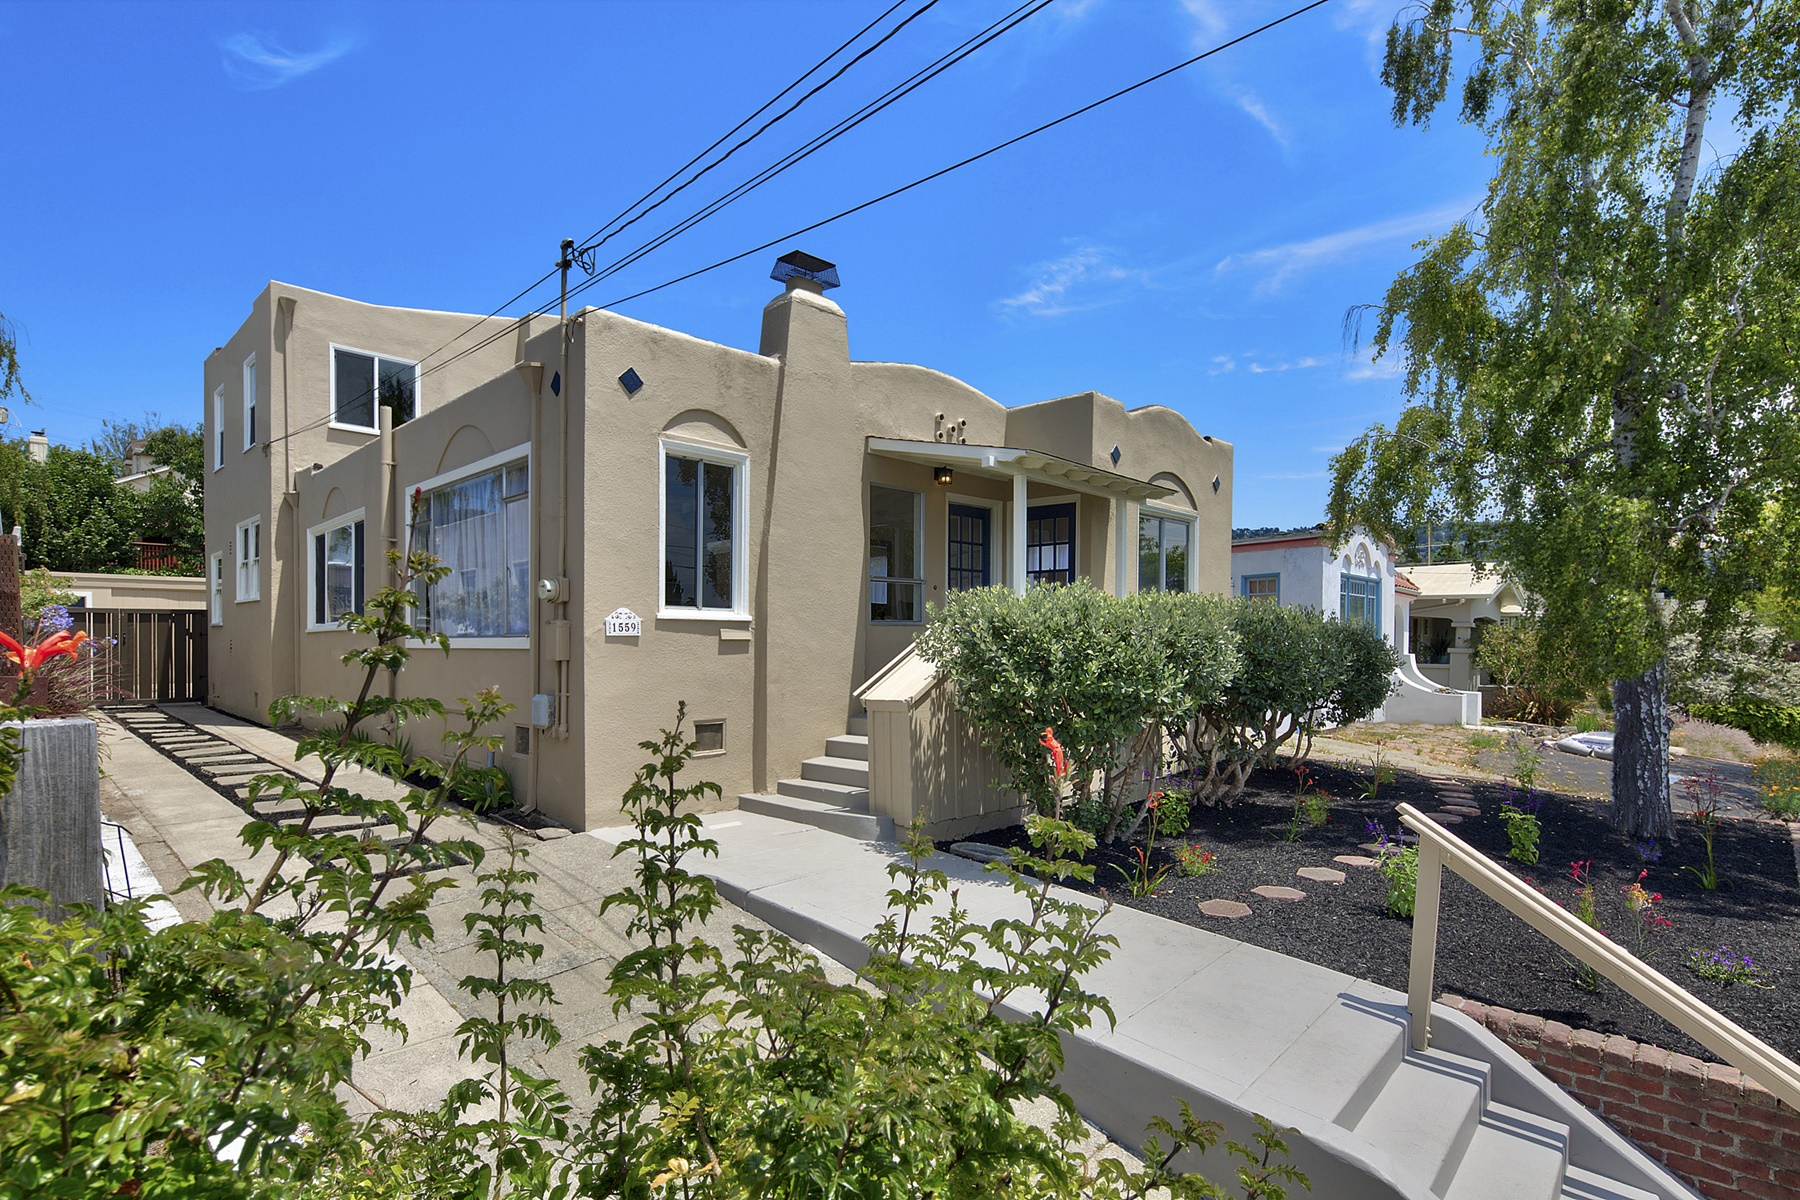 Single Family Home for Sale at Charming Bungalow With Views 1559 Posen Avenue Berkeley, California 94706 United States